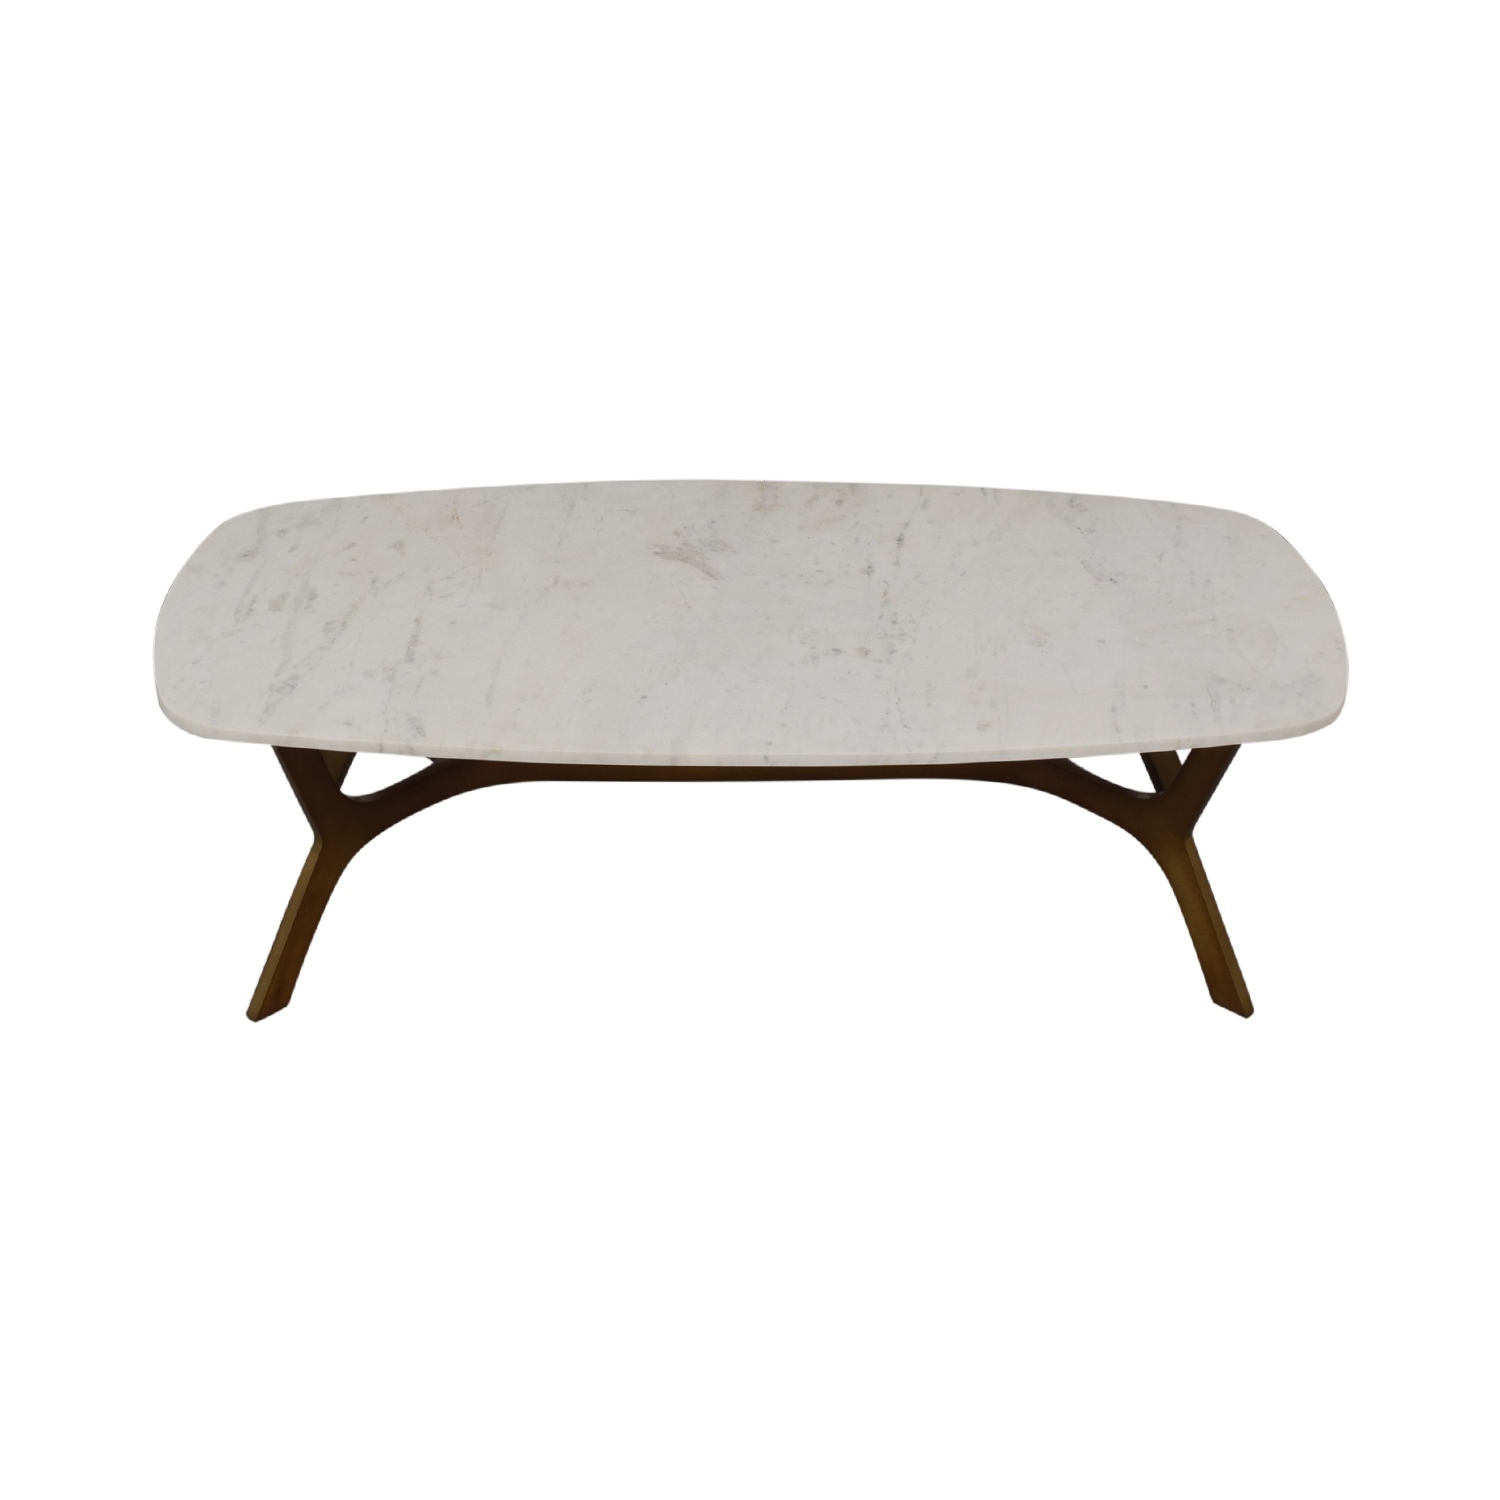 Crate & Barrel Crate & Barrel Elke Marble Coffee Table With Brass Base